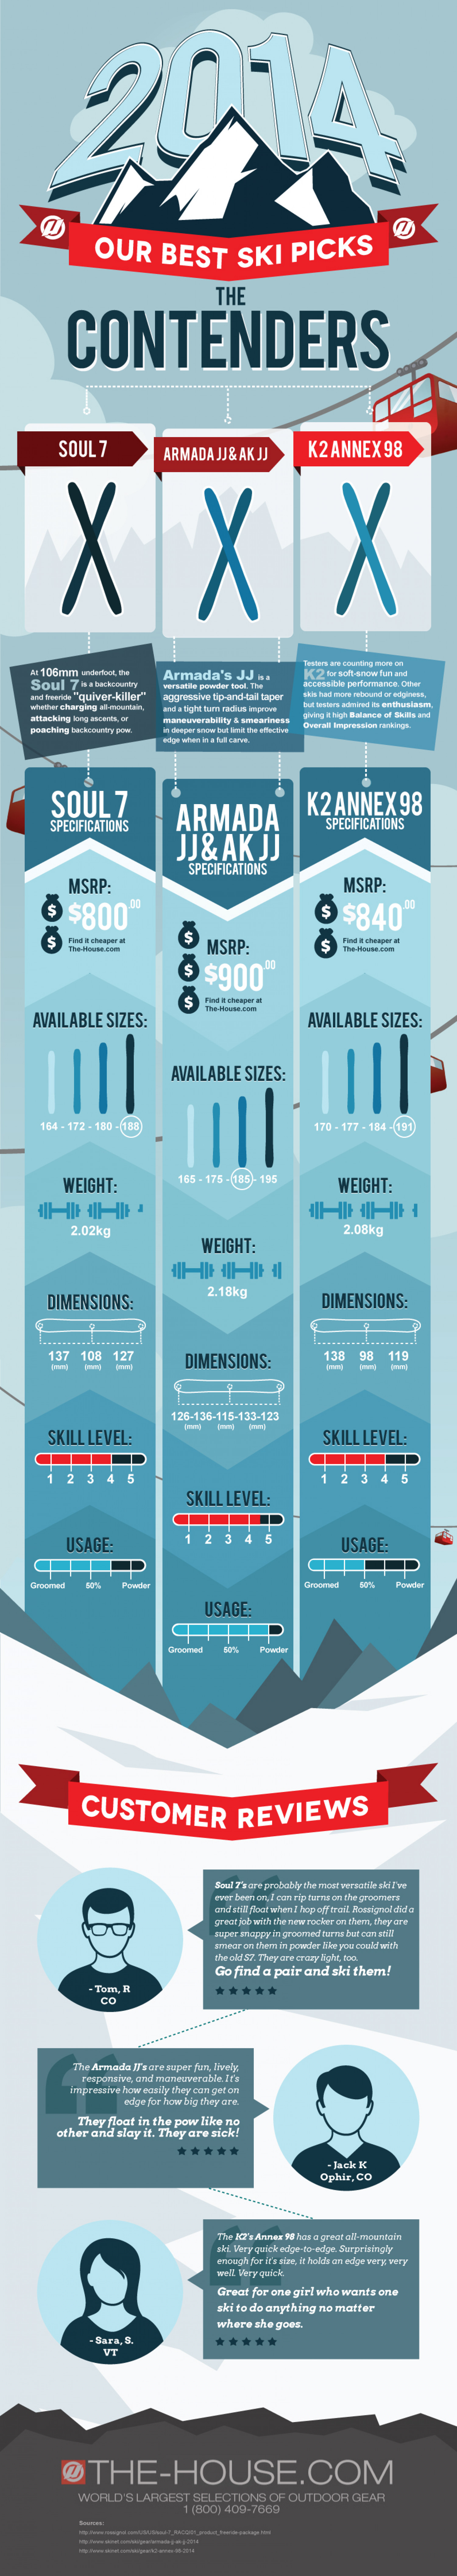 Top Rated Skis of 2014 Infographic